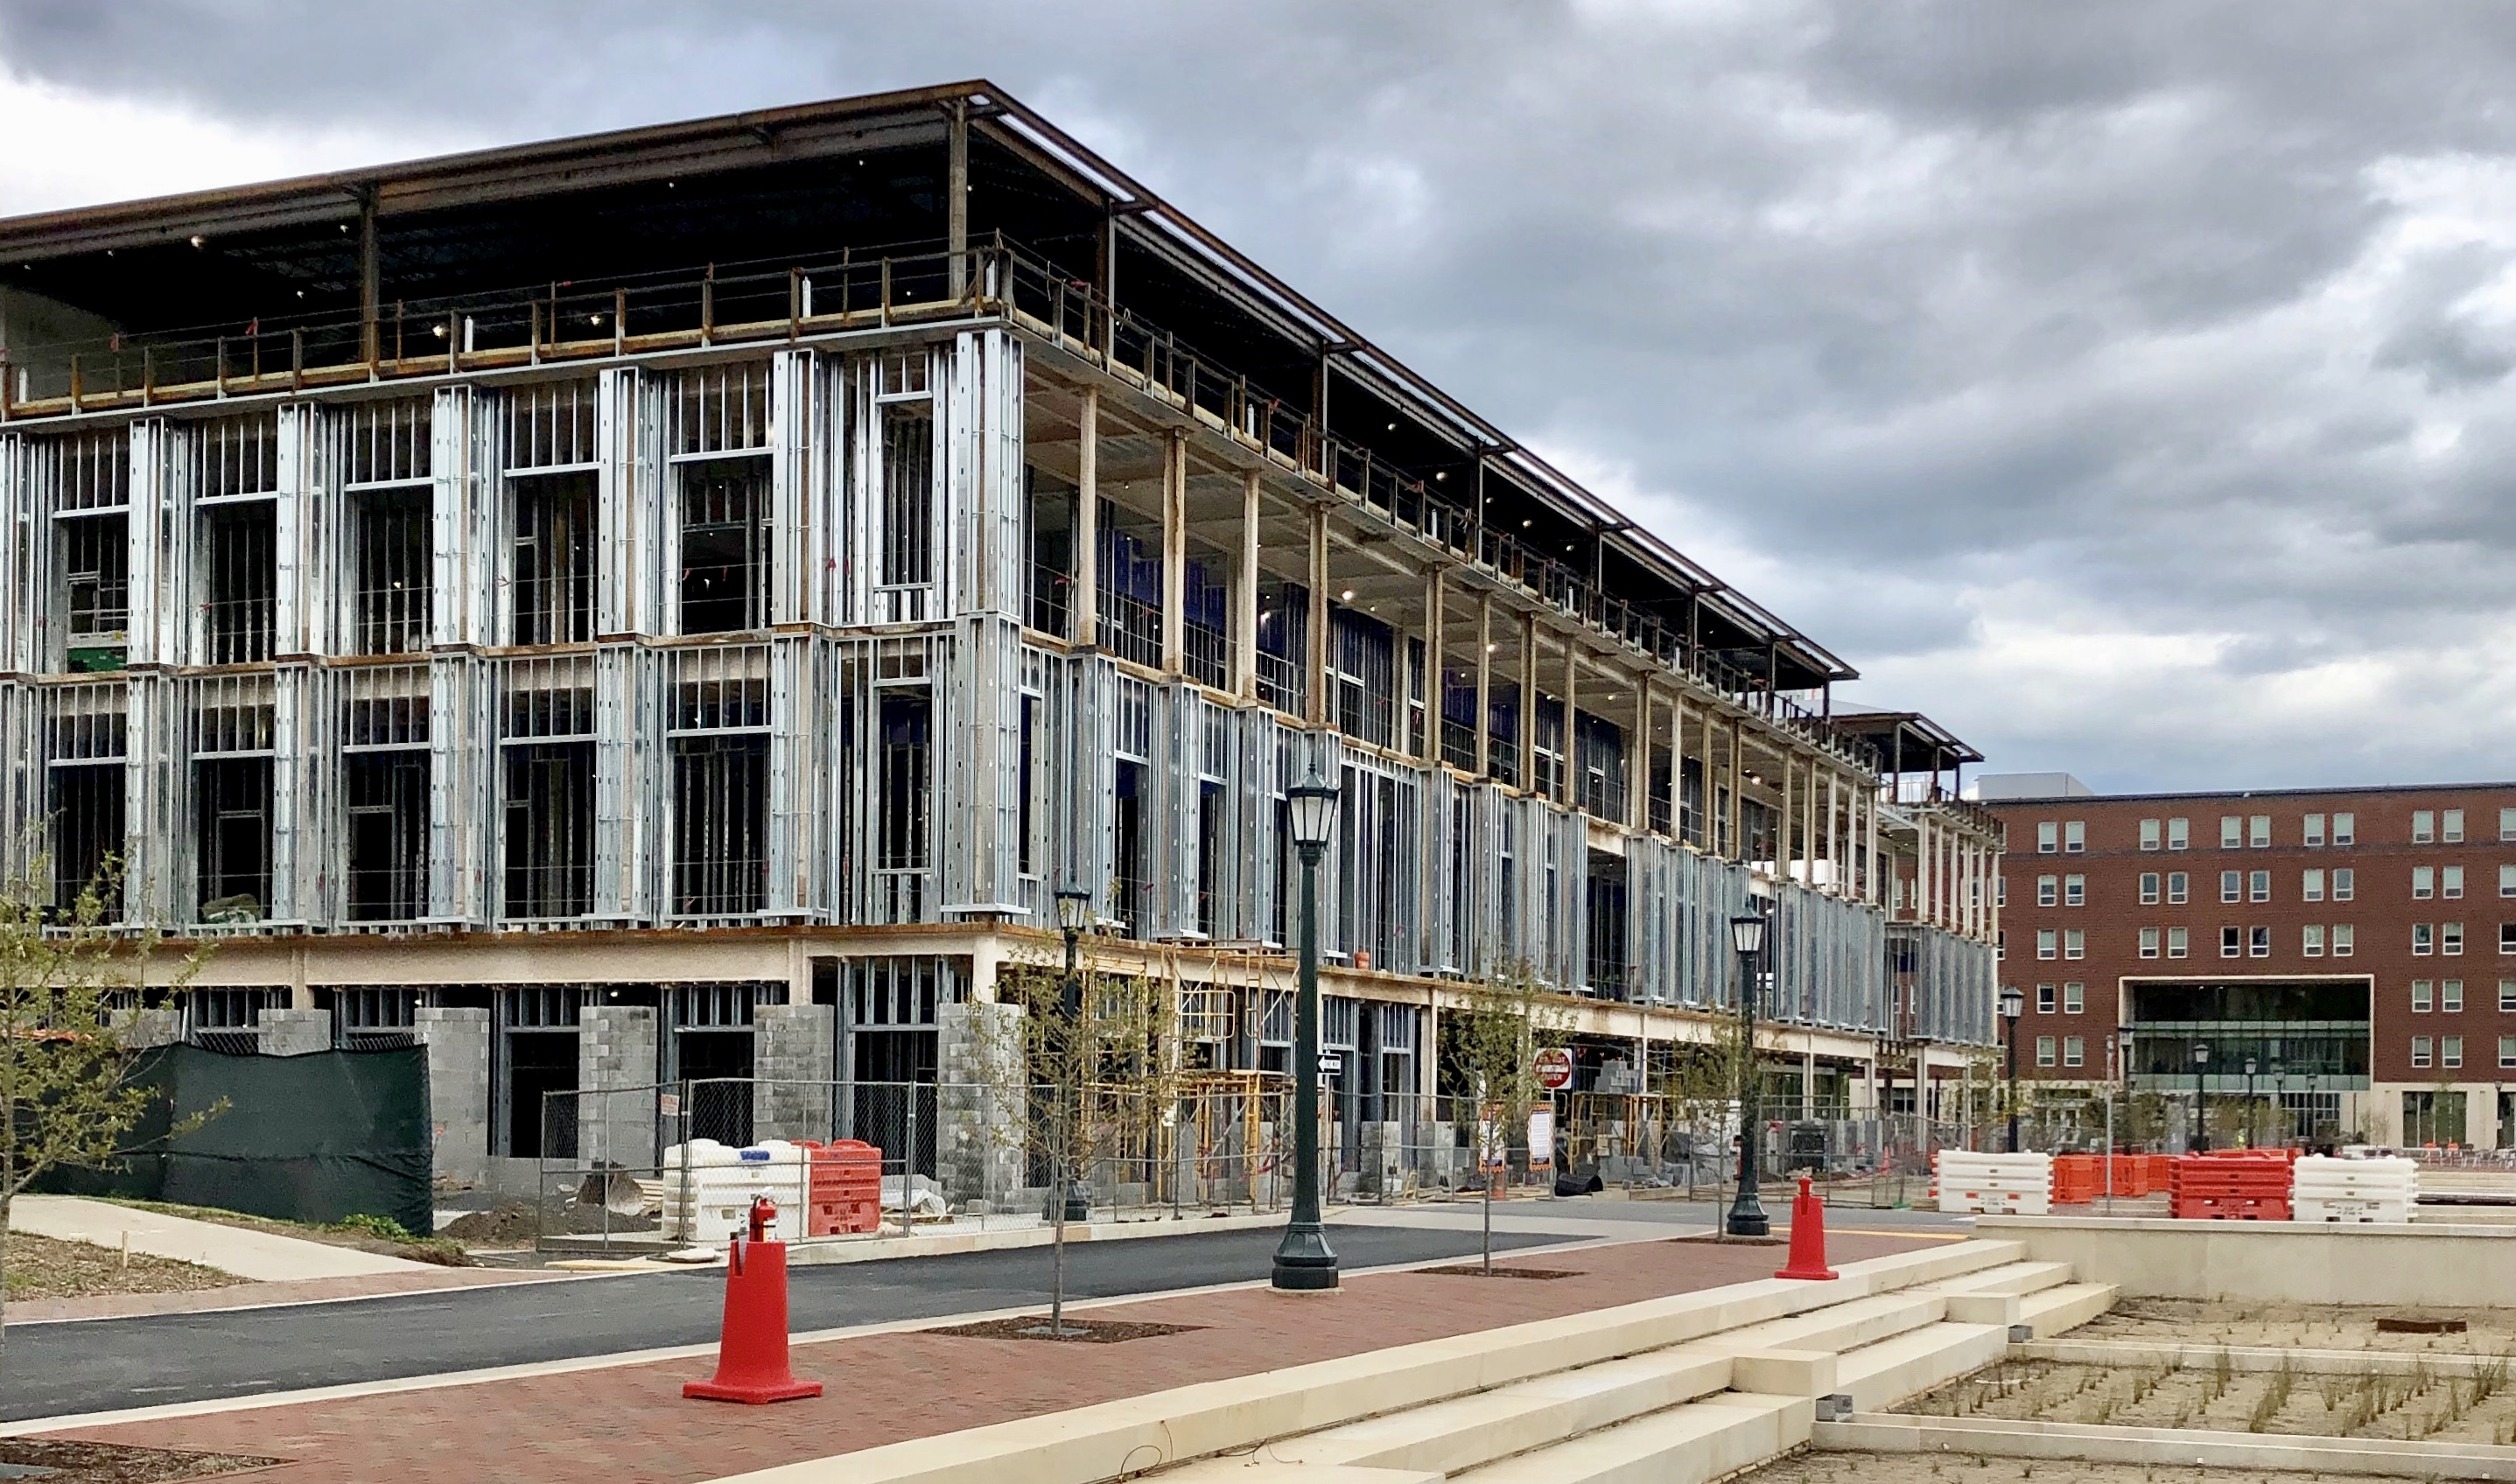 construction is visible, steal beams showcase four floors